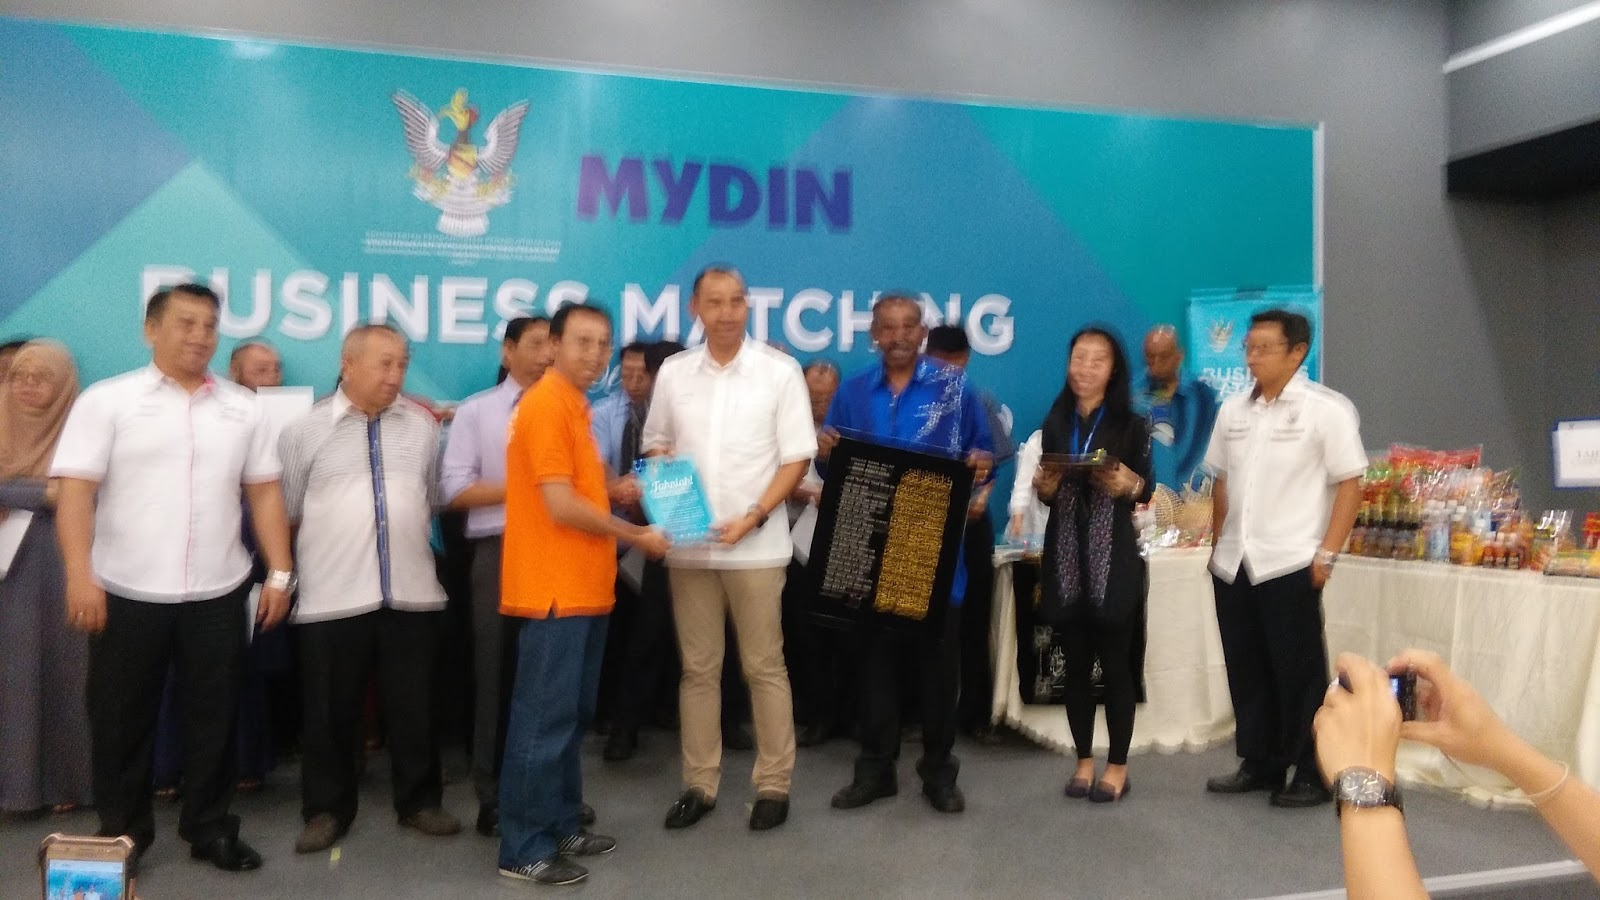 mydin business profile Mydin was founded in 1918 by gulam husen jamal, father to mydin mohamed in penang their first hawker business was started on 1940 however,.